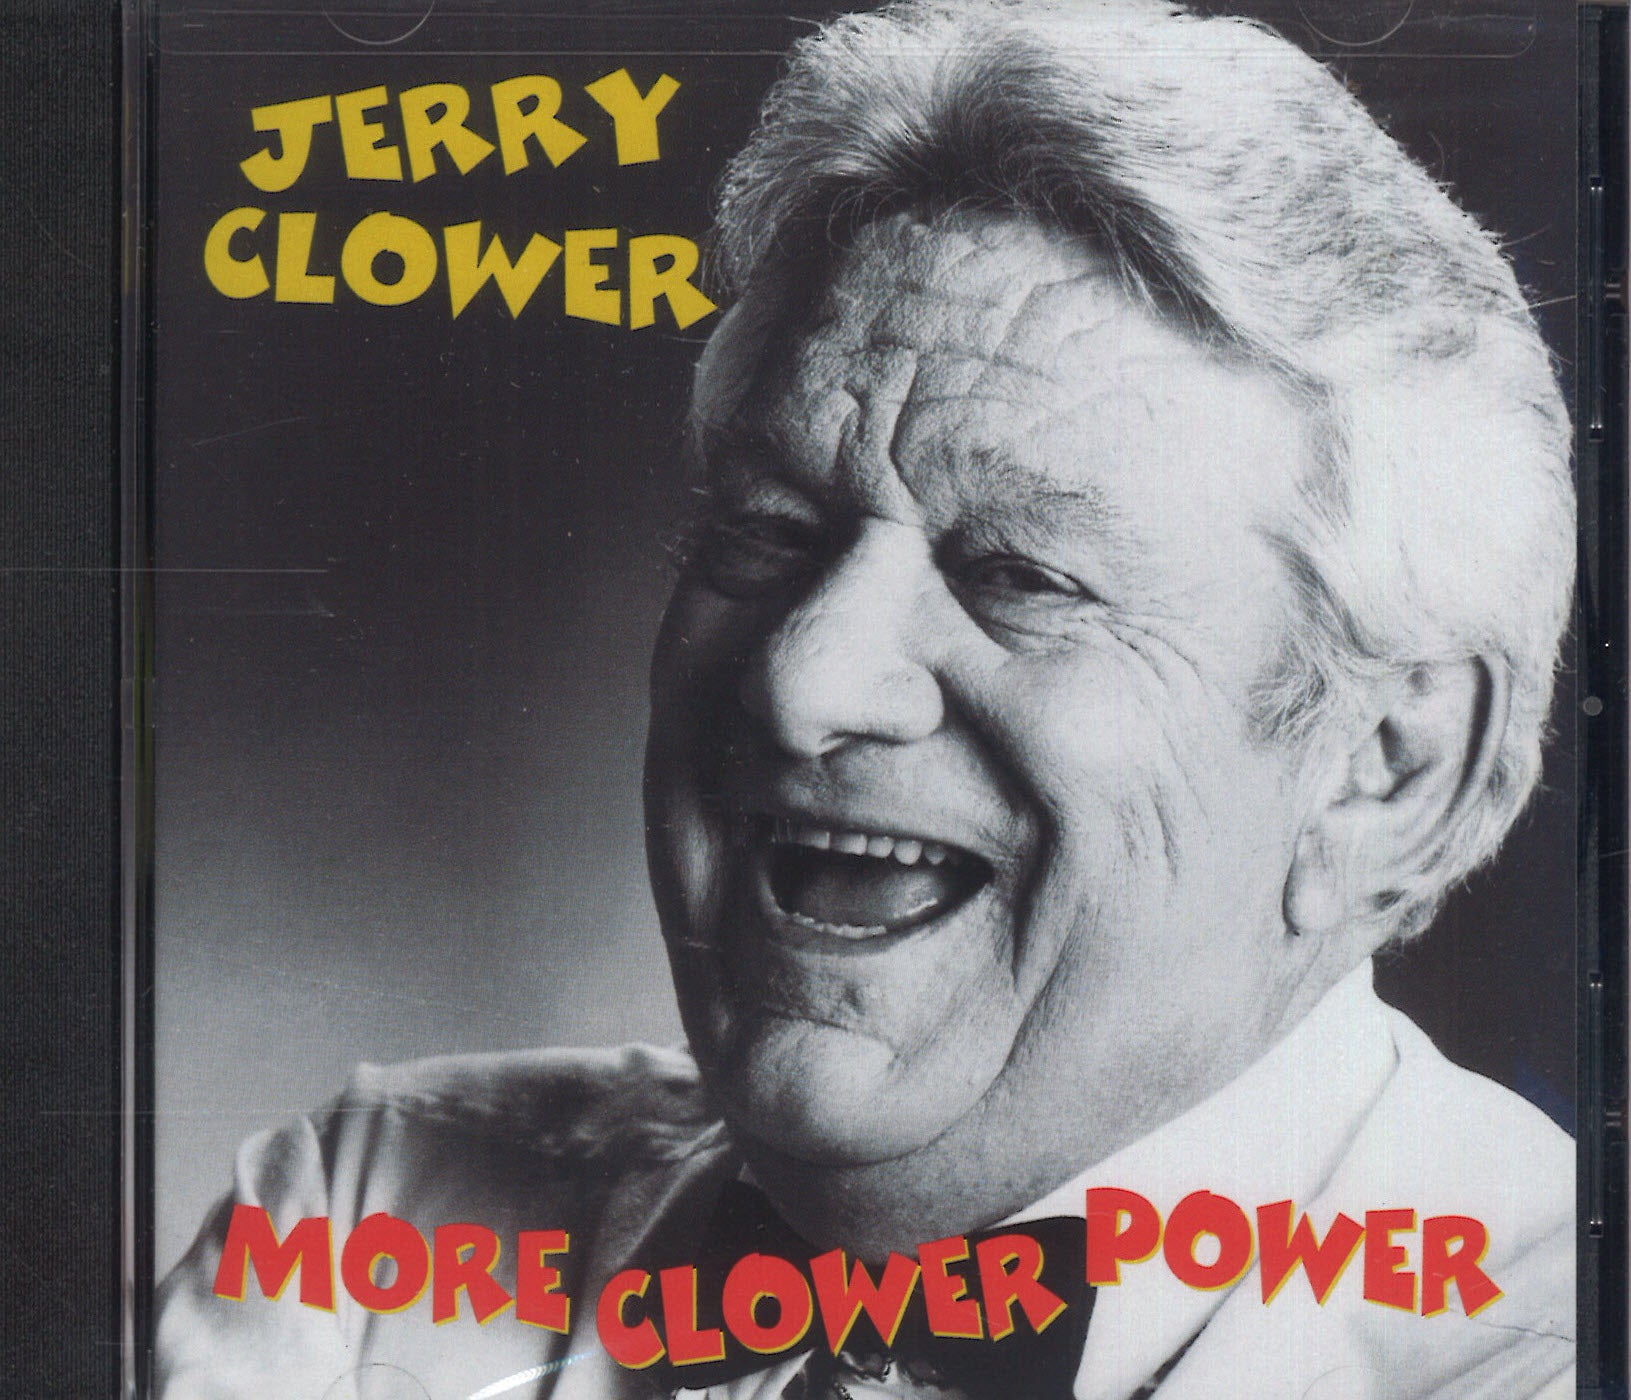 Jerry Clower More Clower Power